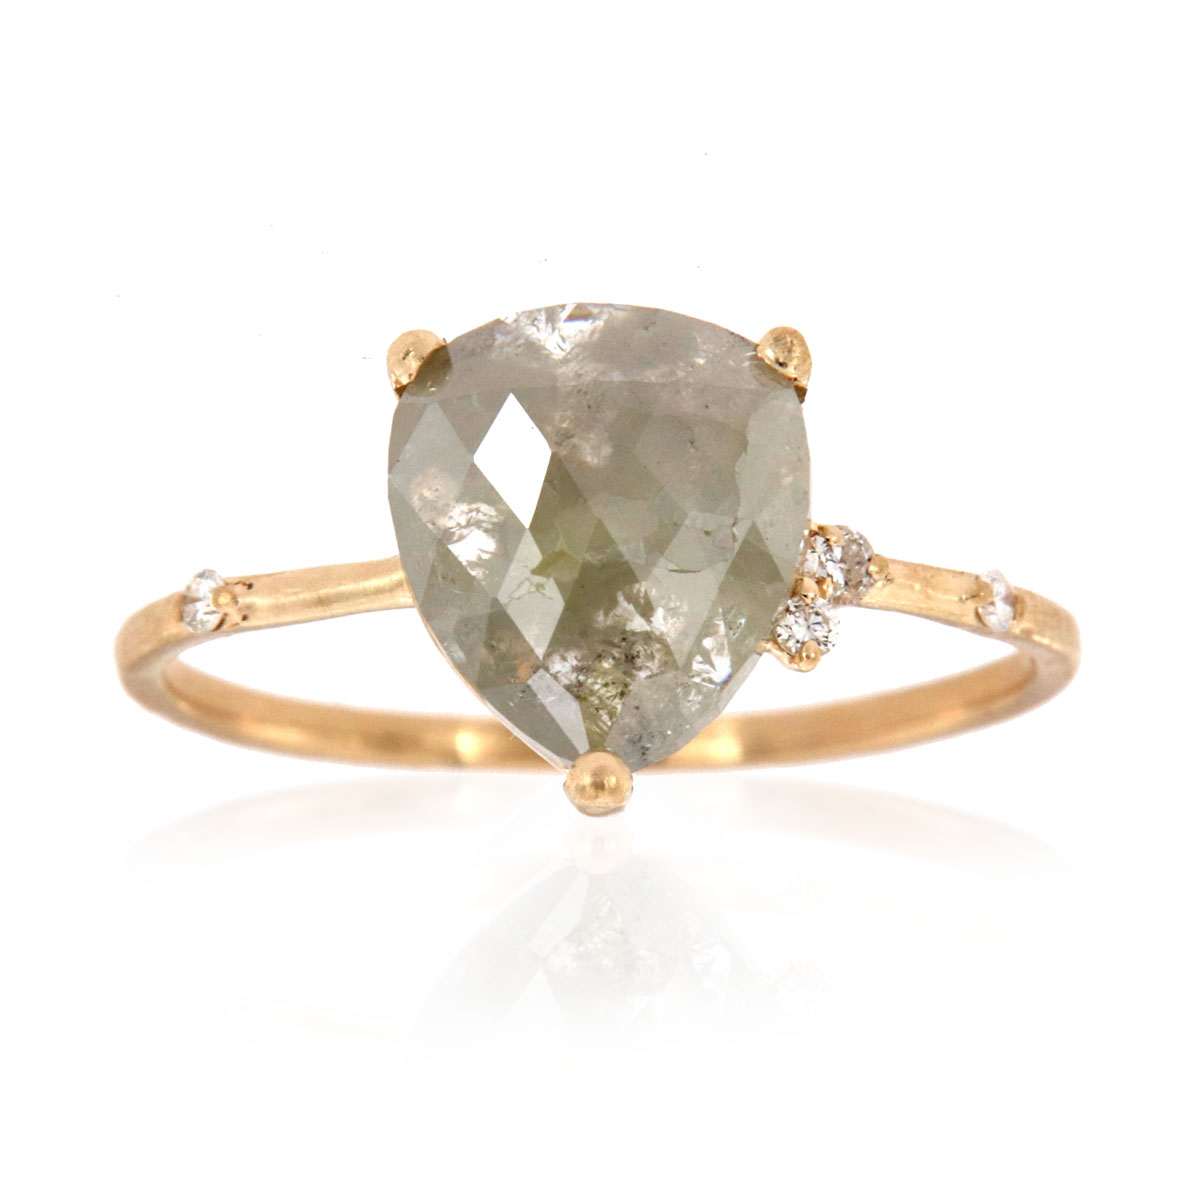 14K Yellow Gold Brook Icey Pear Delicate Rustic Earthy Design Diamond Ring ( Center -1.59 Carat)